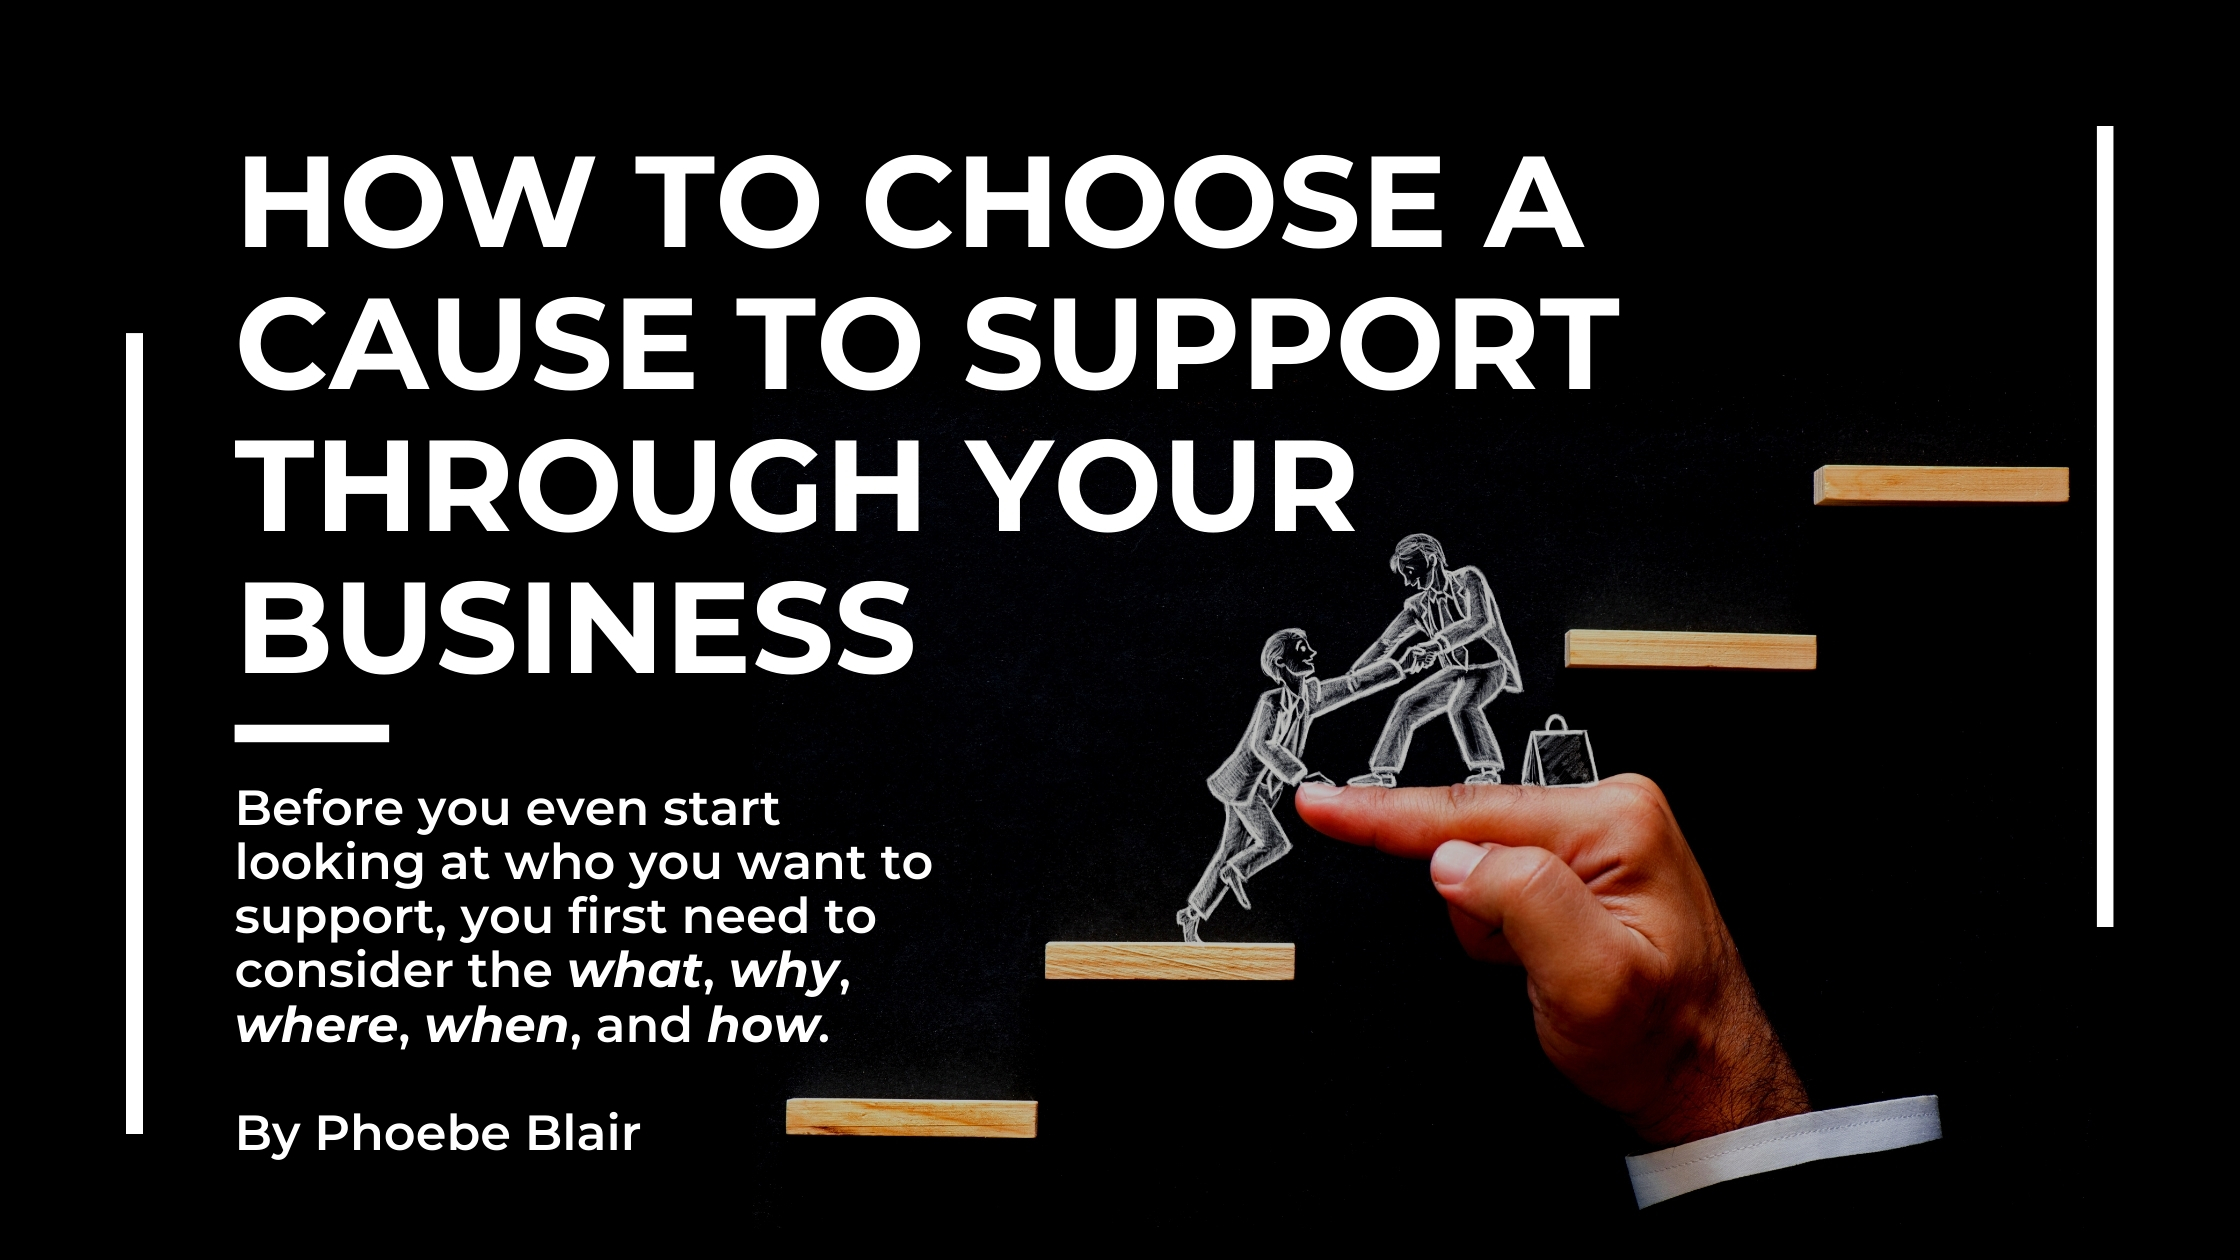 Black background with thin vertical white lines on each side. On the left reads 'How to Choose a Cause to Support Through your Business'. in large white bold text. Underneath in smaller font reads 'Before you even start looking at who you want to support, you first need to consider the what, why, where, when and how. By Phoebe Blair' On the right hand side are 5 wooden steps to make a stair case, the third step is someones hand. Drawn stood on the hand is someone helping someone up onto the step as it is steep.